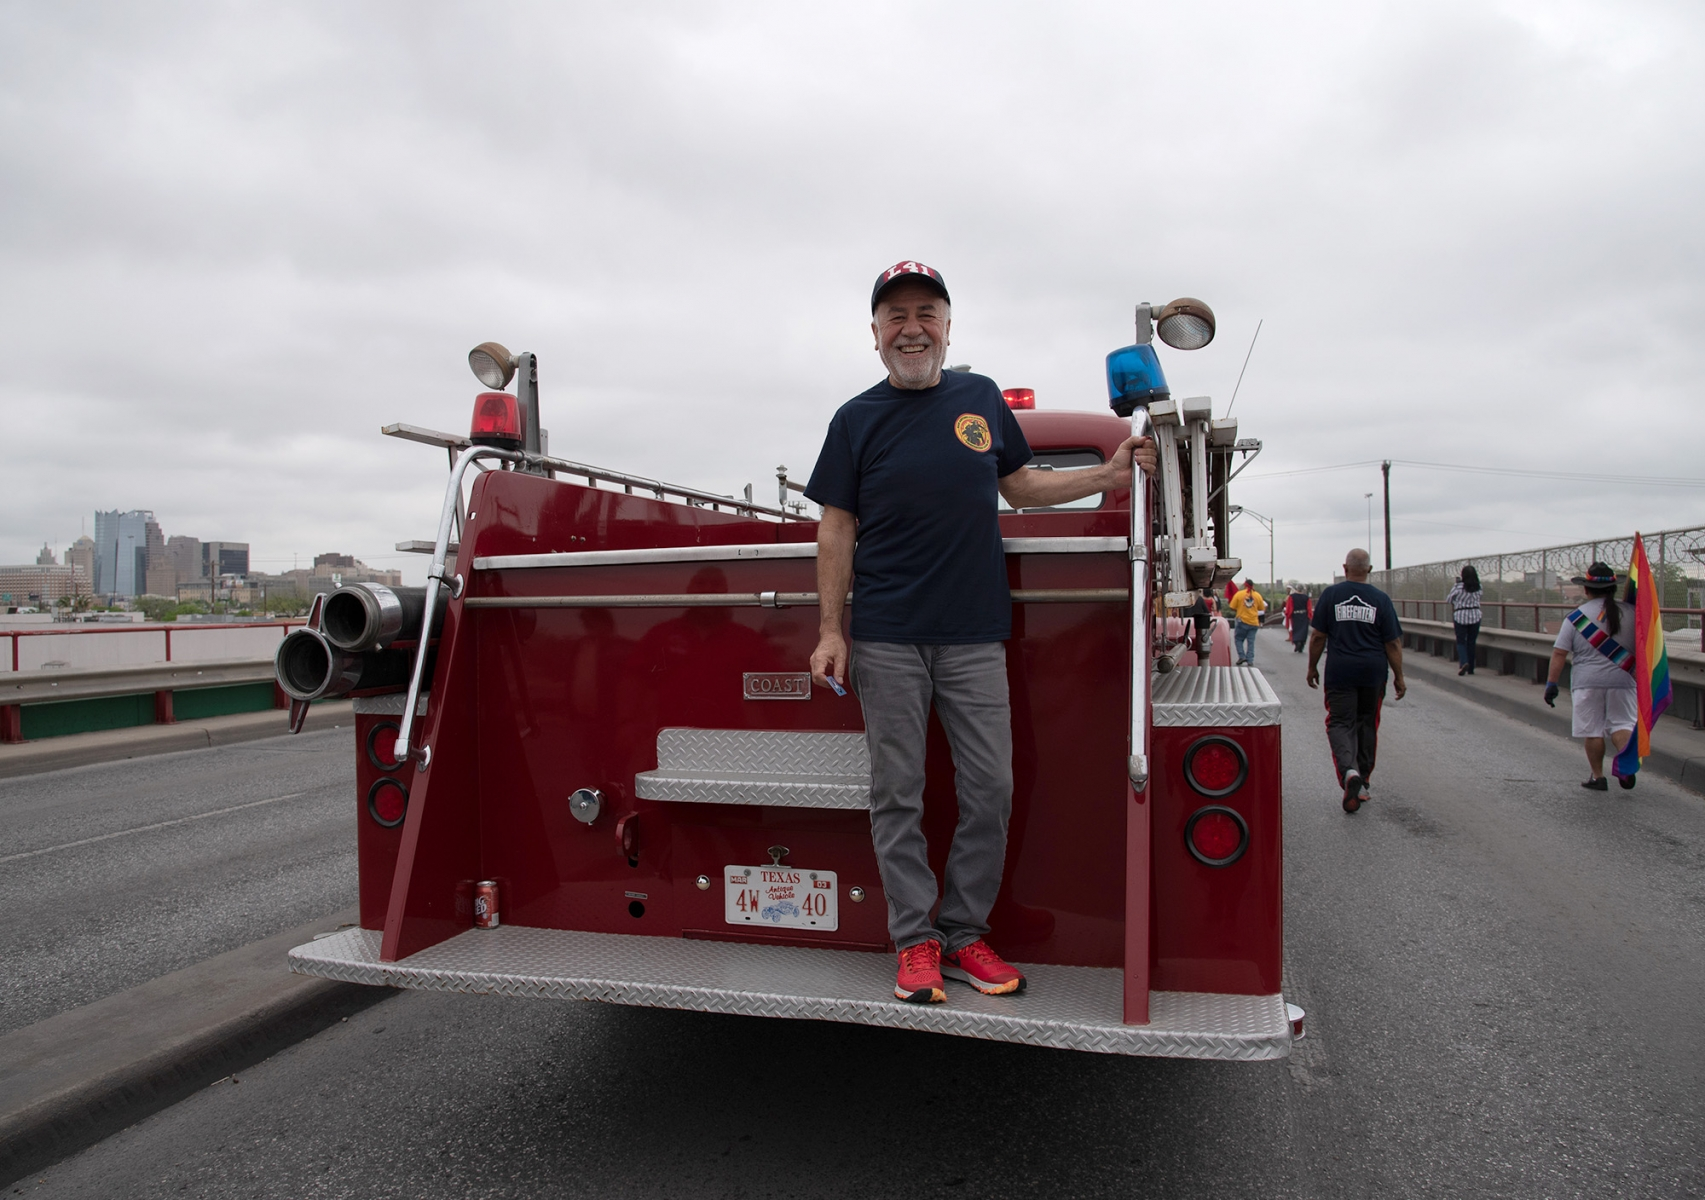 Joel Gonzalez, retired firefighter, stands on the back of an antique firetruck during San Antonio's 23rd annual César E. Chávez March for Justice on Saturday, March 30, on Guadalupe Street. Photo by V. Finster | Heron